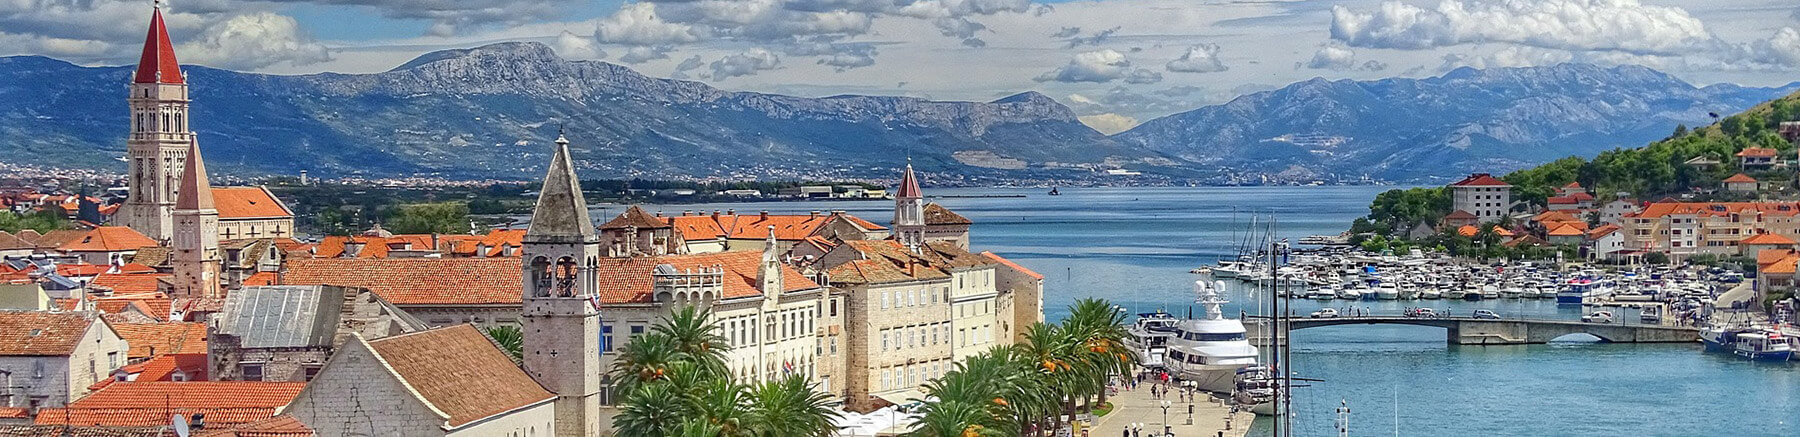 View of the old town of Trogir in Croatia